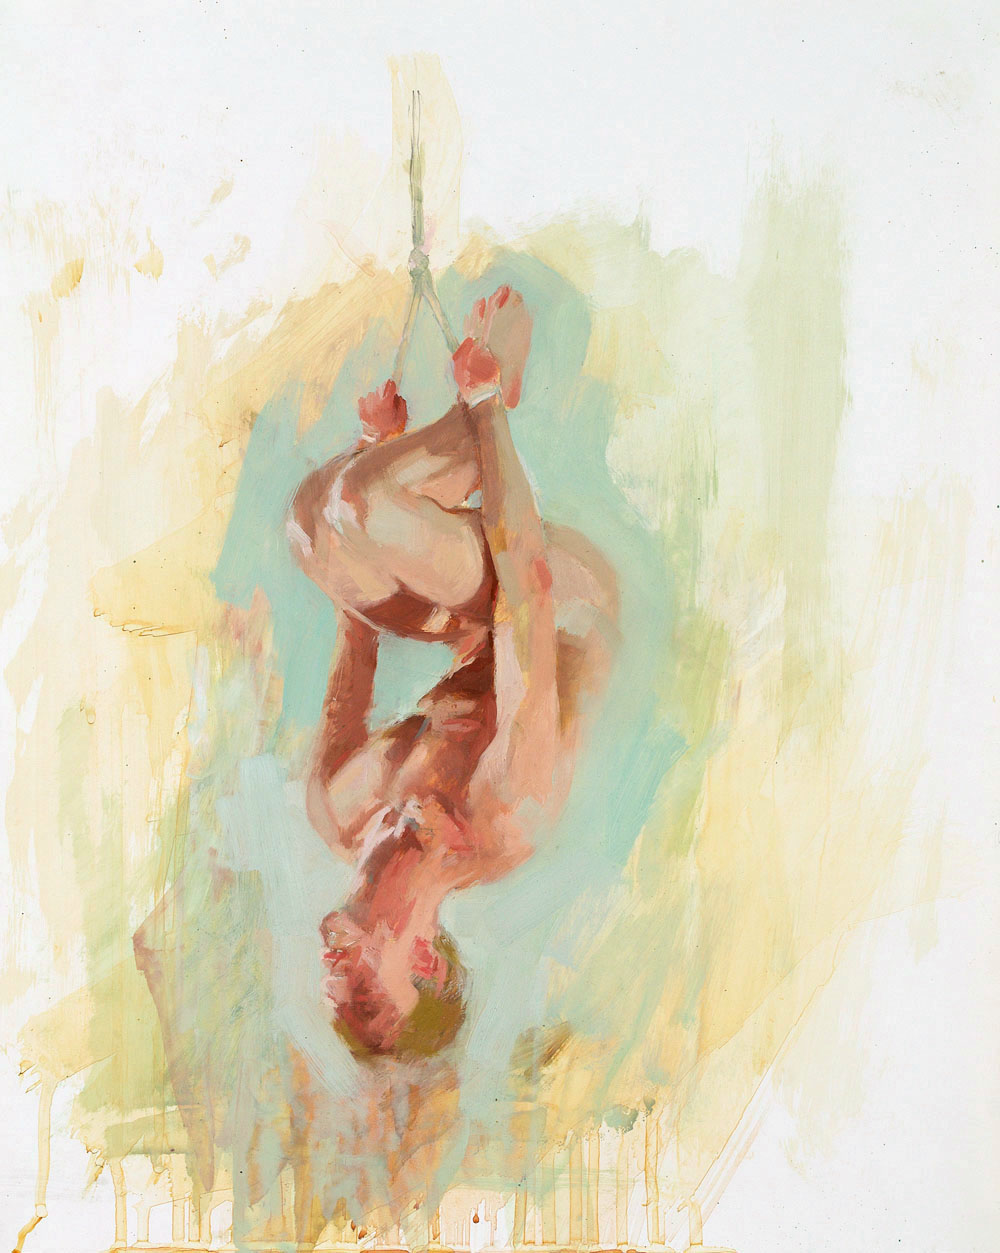 Hang Study No. 3   20 x 16 inches  oil on TerraSkin